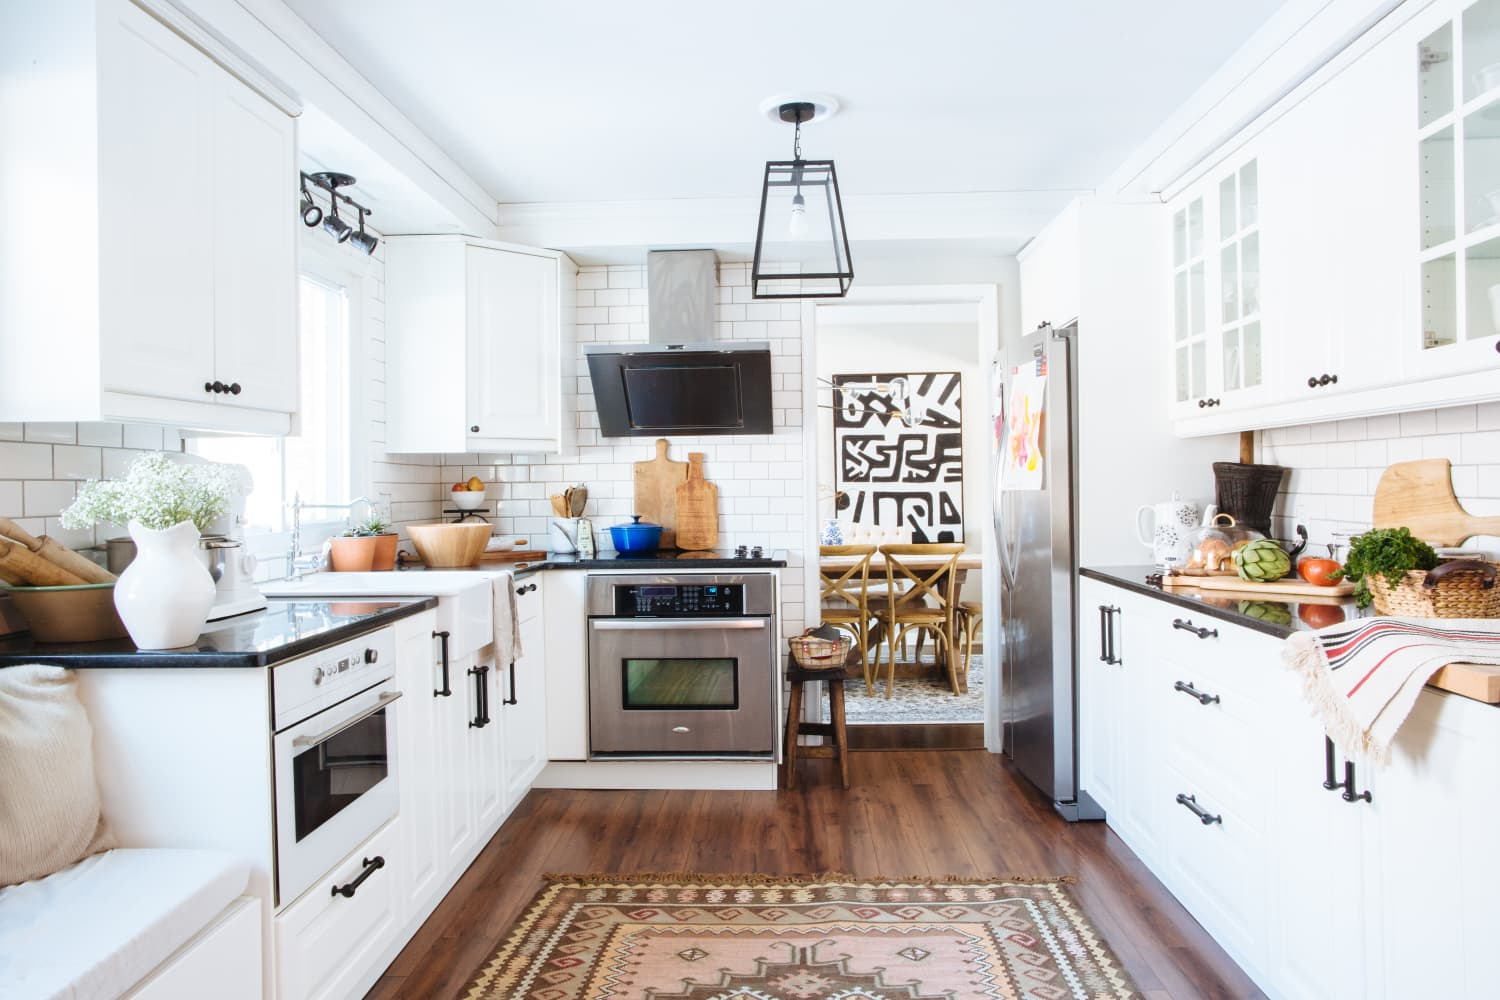 5 Secrets of People Who Always Seem to Have a Tidy Kitchen